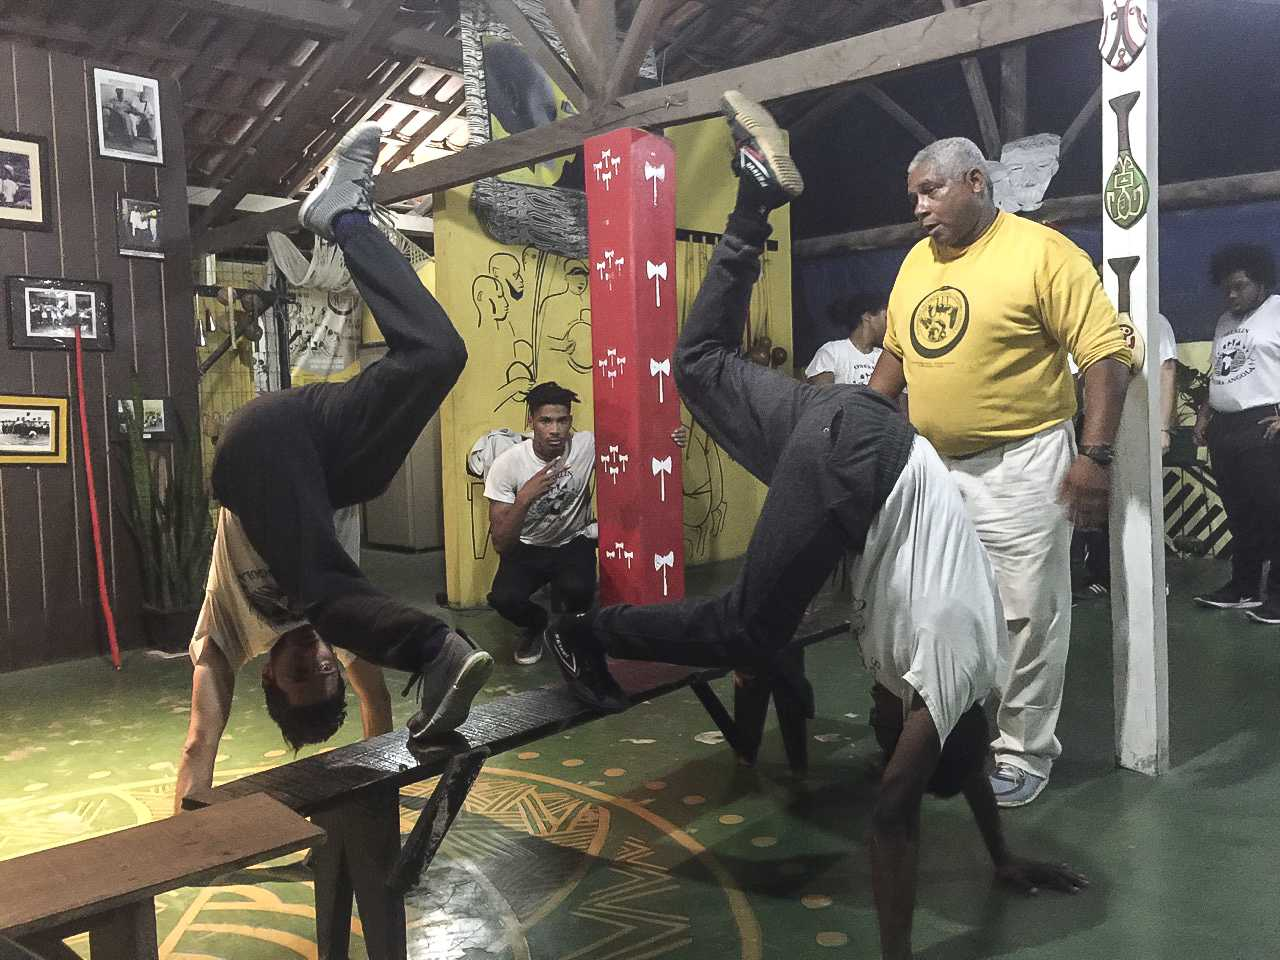 From left to right, College senior Davíd Zager and College junior Deron Essex receive instruction in Capoeira Angola from Mestre Jurandir of the International Capoeira Angola Foundation. Capoeira is a martial art and dance form developed by Angolans in Brazil in the 16th century. The art form is practiced in countries all over the world, and made its way to the U.S. in the late 20th century.  Several students took part in the trip to Brazil over Winter Term, led by Associate Professor of Theater and Africana Studies Justin Emeka, OC '95. Students spent 20 days in the cities of Belo Horizonte and Salvador, working with three different Capoeira groups and participating in a facilitated discussion on how the art can be used to face racial divides and inequality in the U.S.